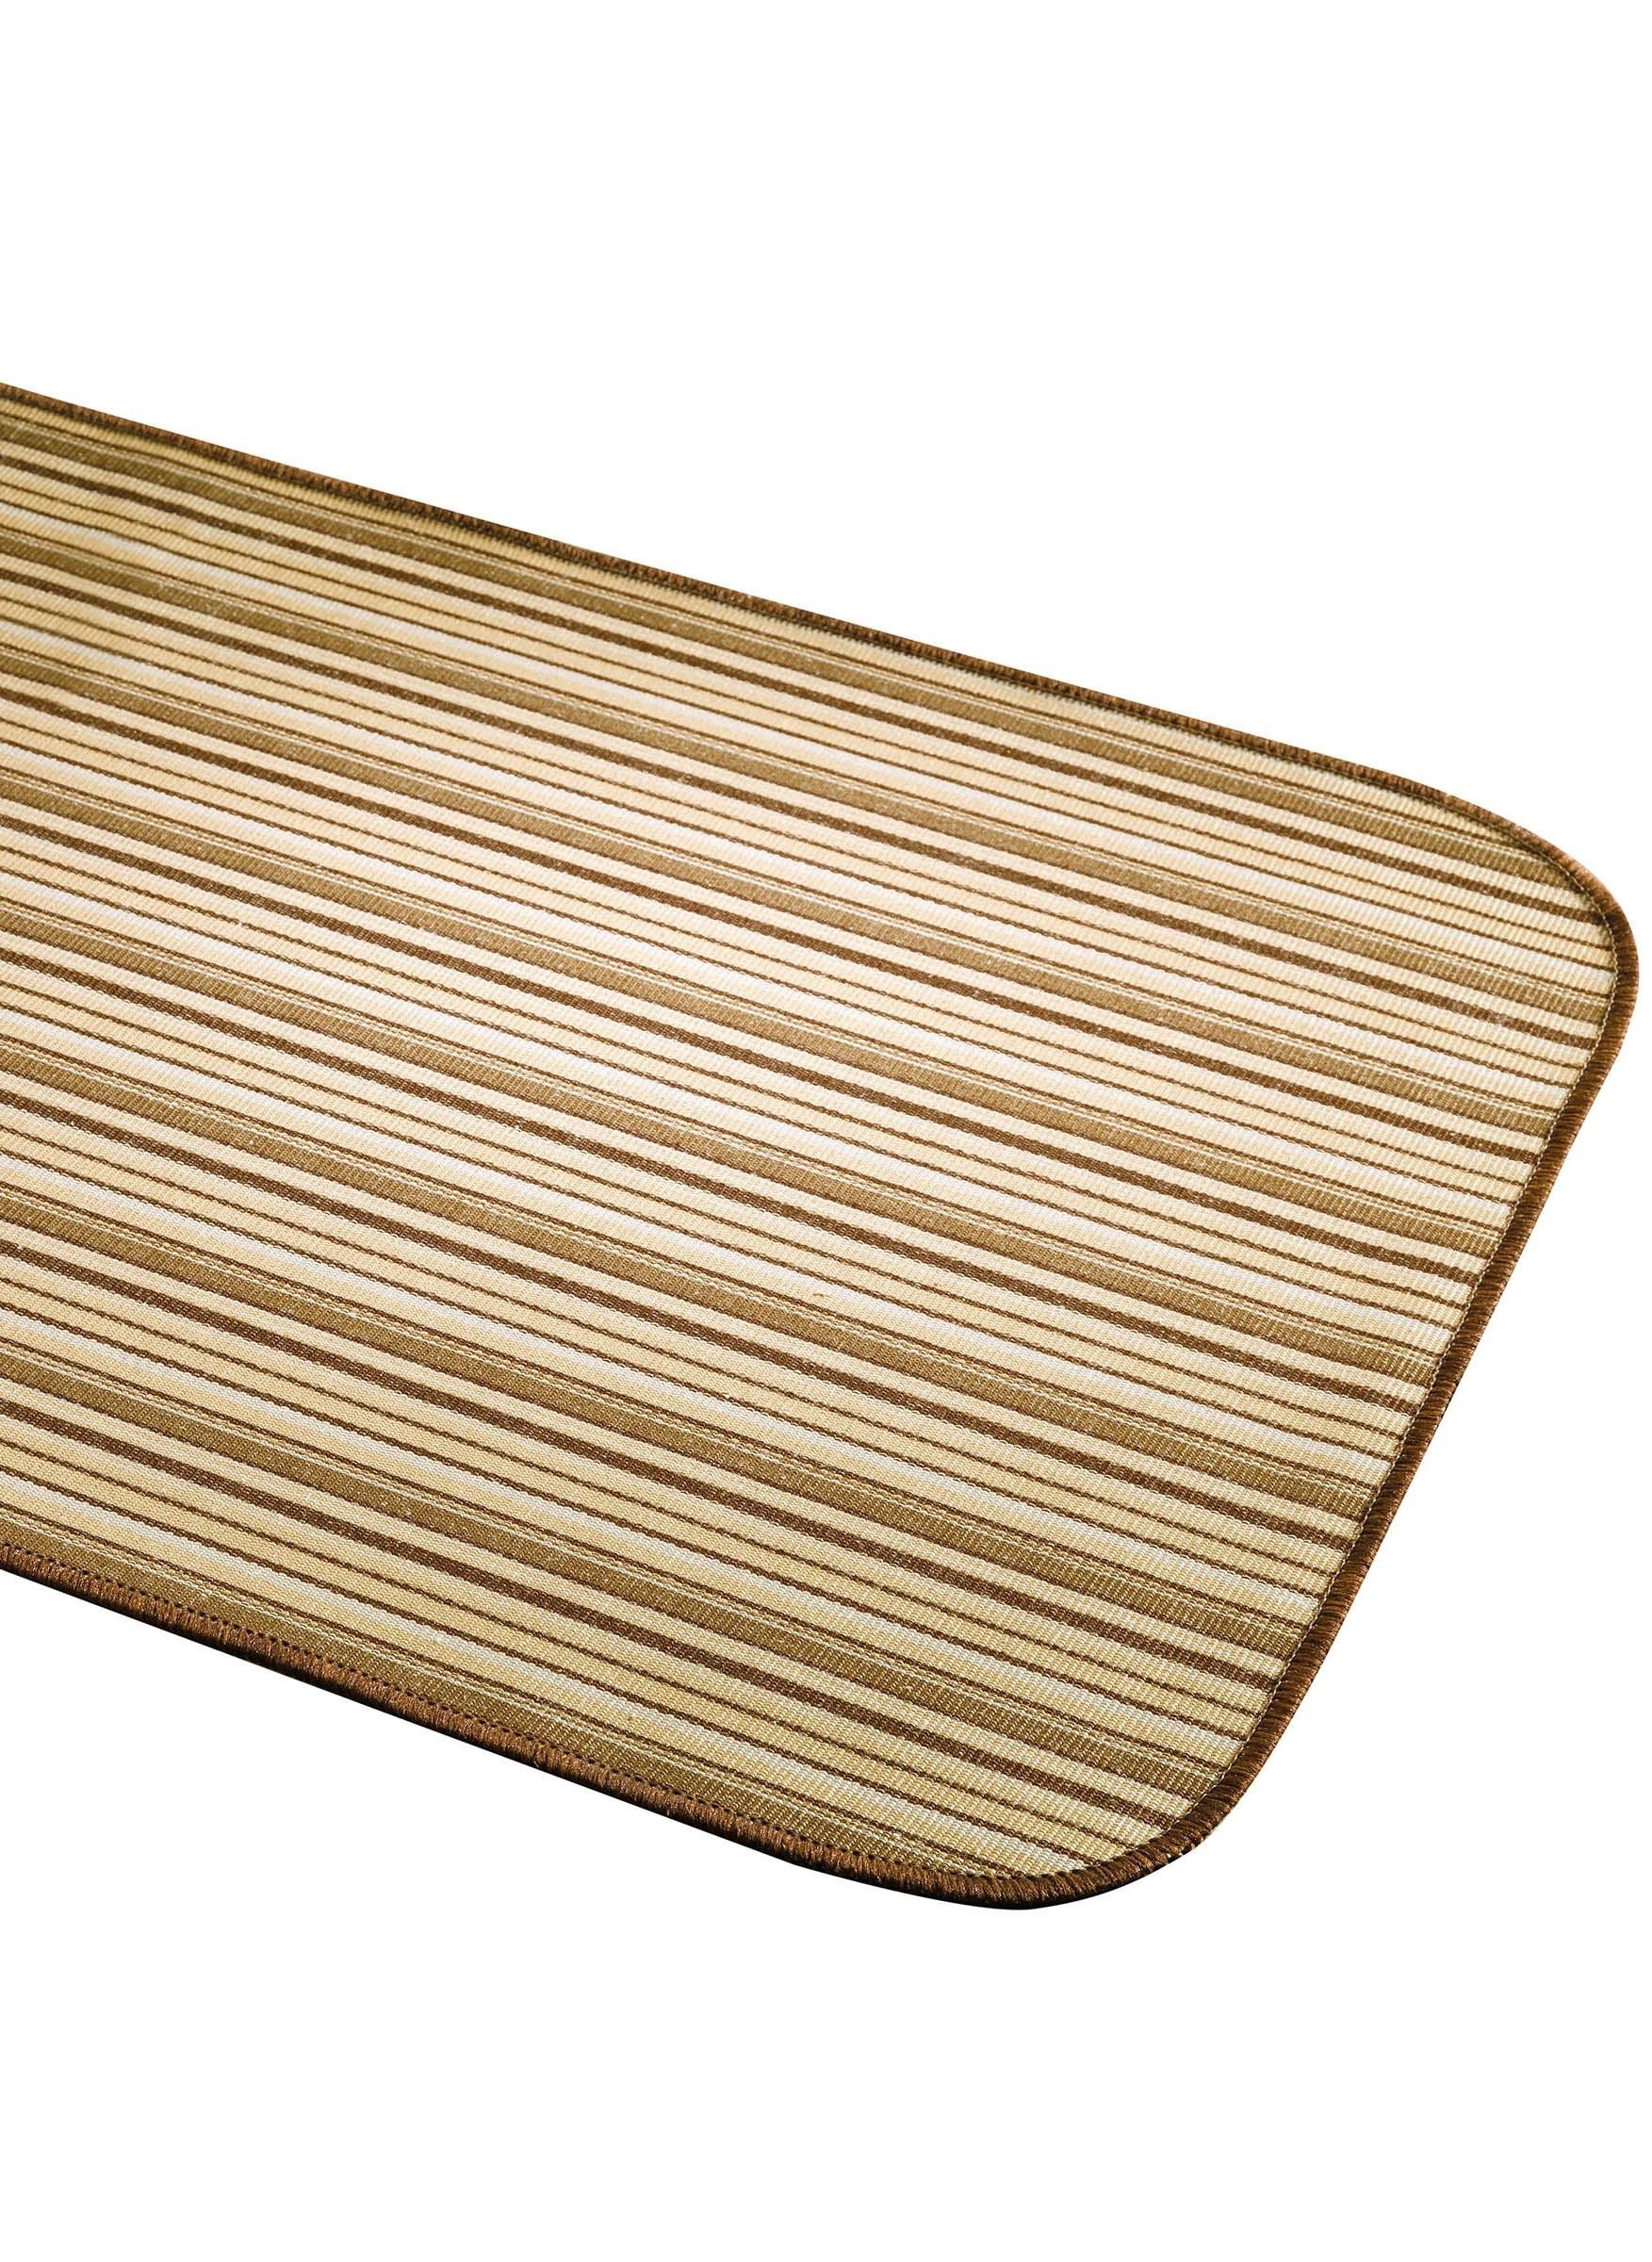 Tapis de cuisine universel for Tapis de cuisine orange